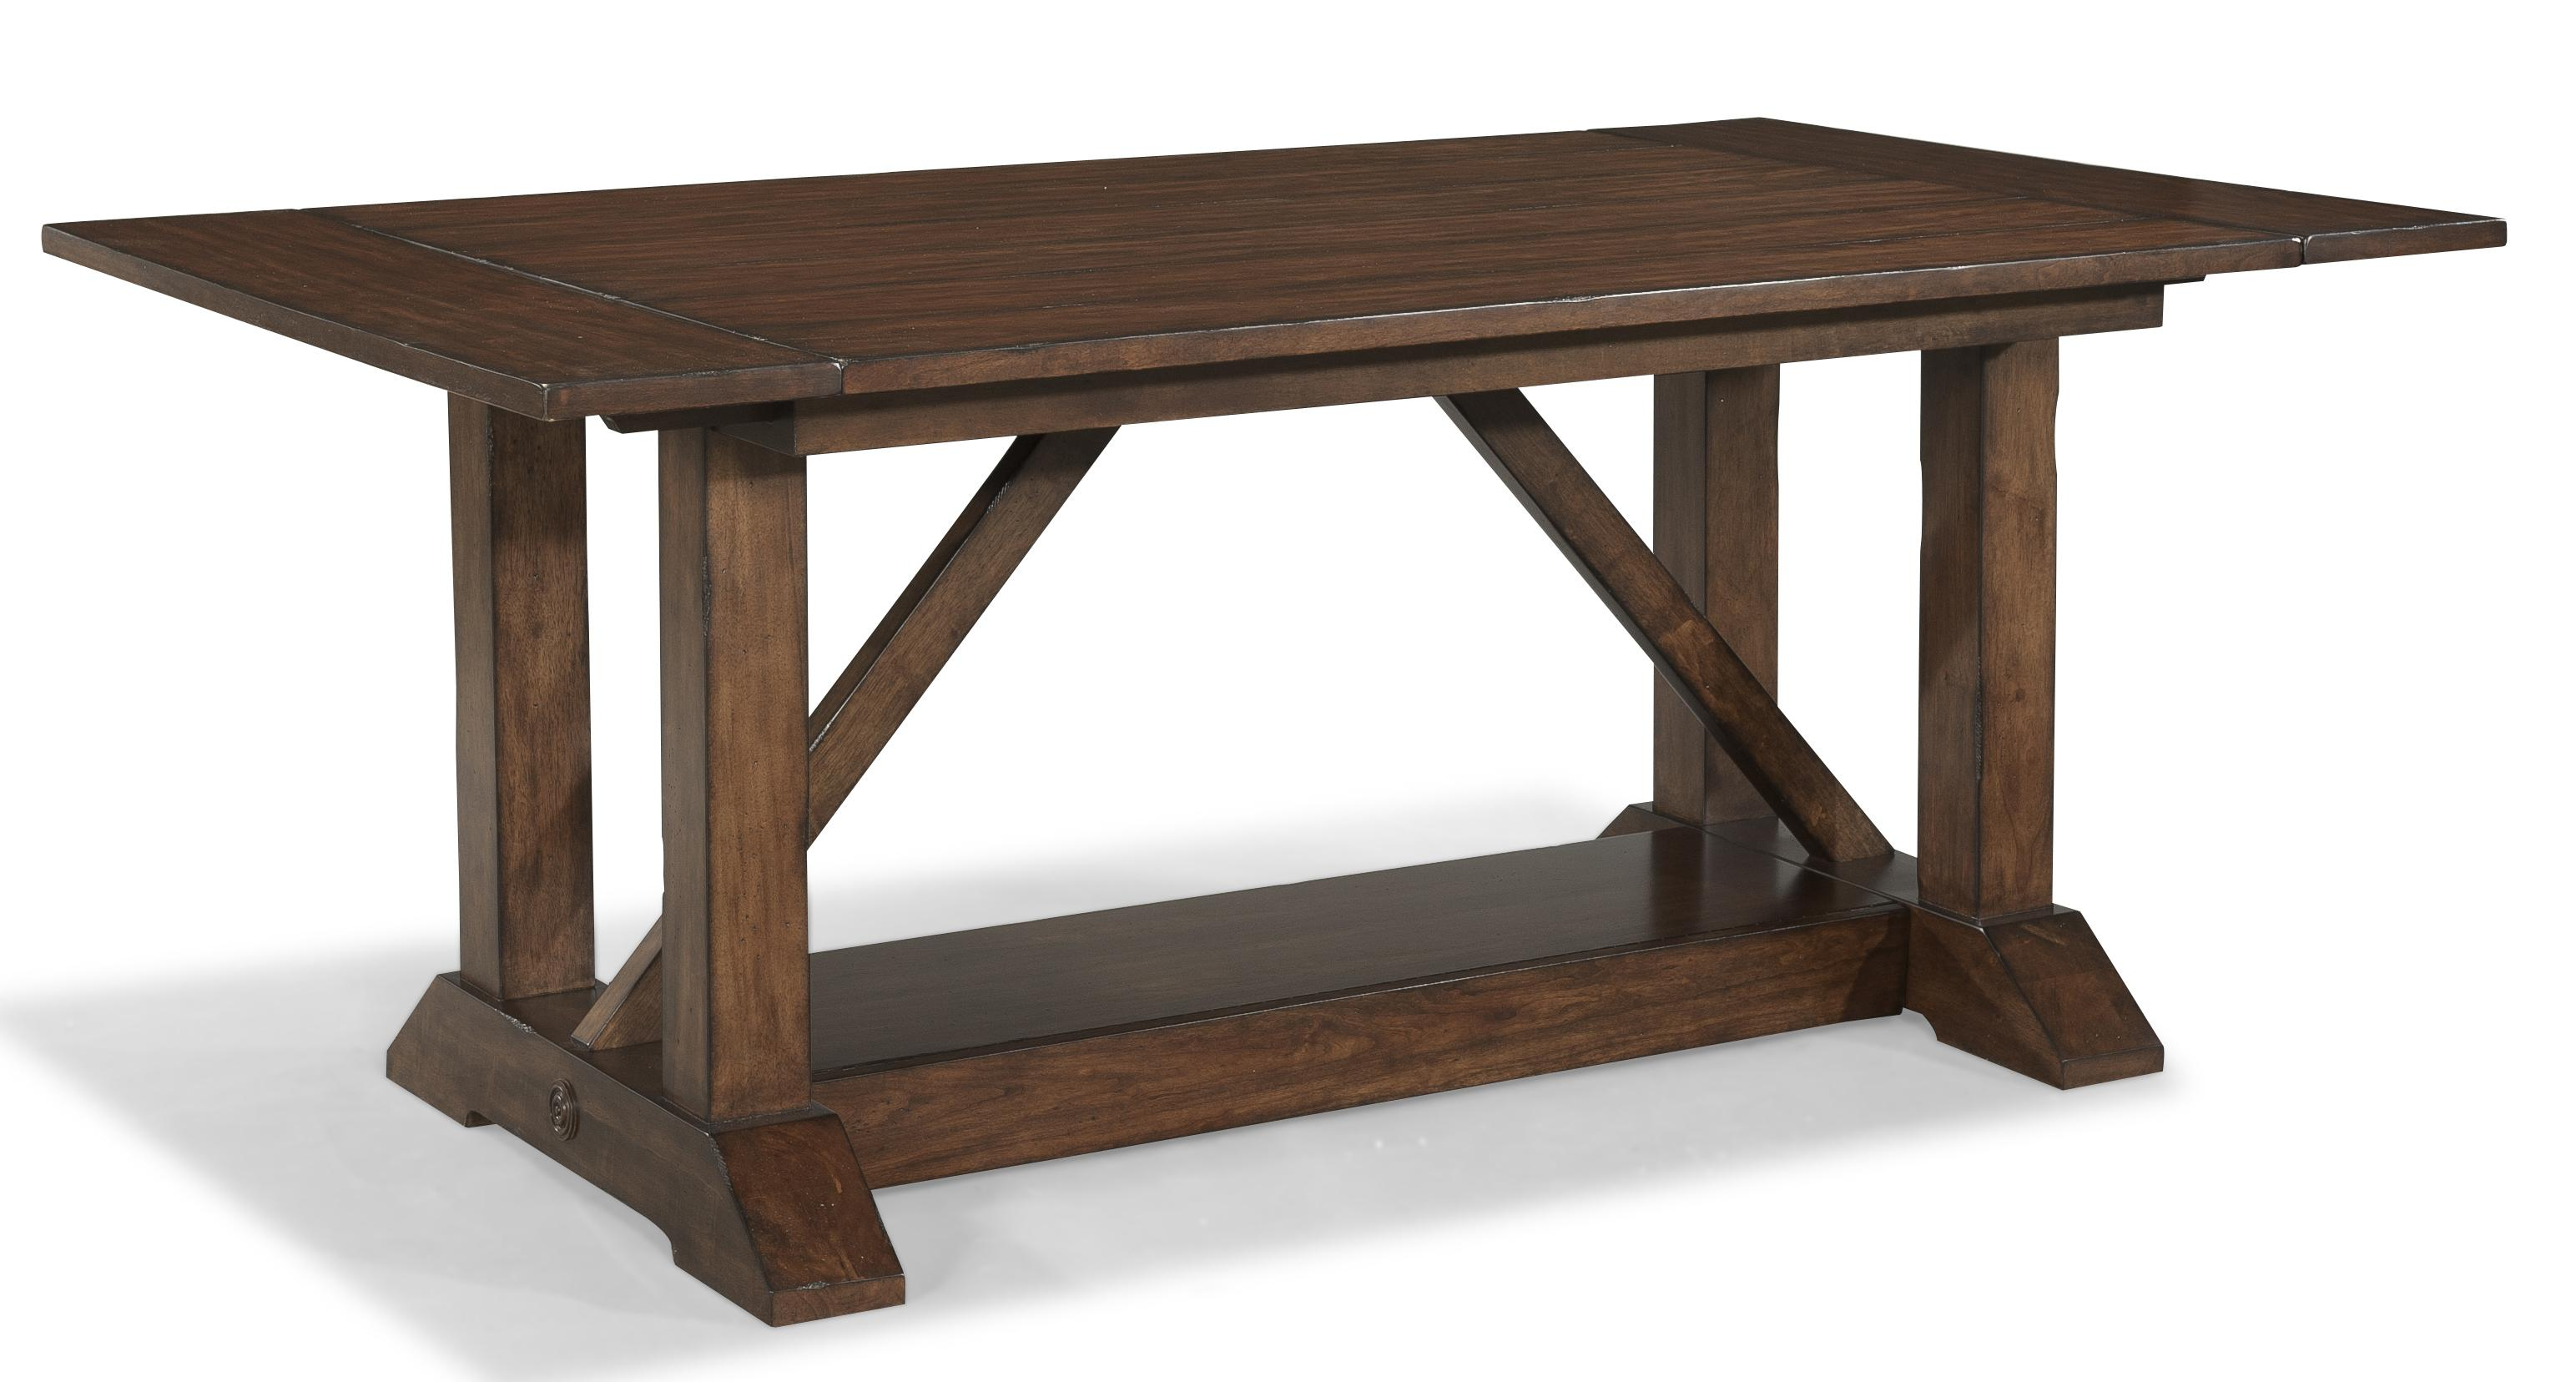 Morris Home Furnishings Livingston Livingston Trestle Table - Item Number: 426-096 DRT